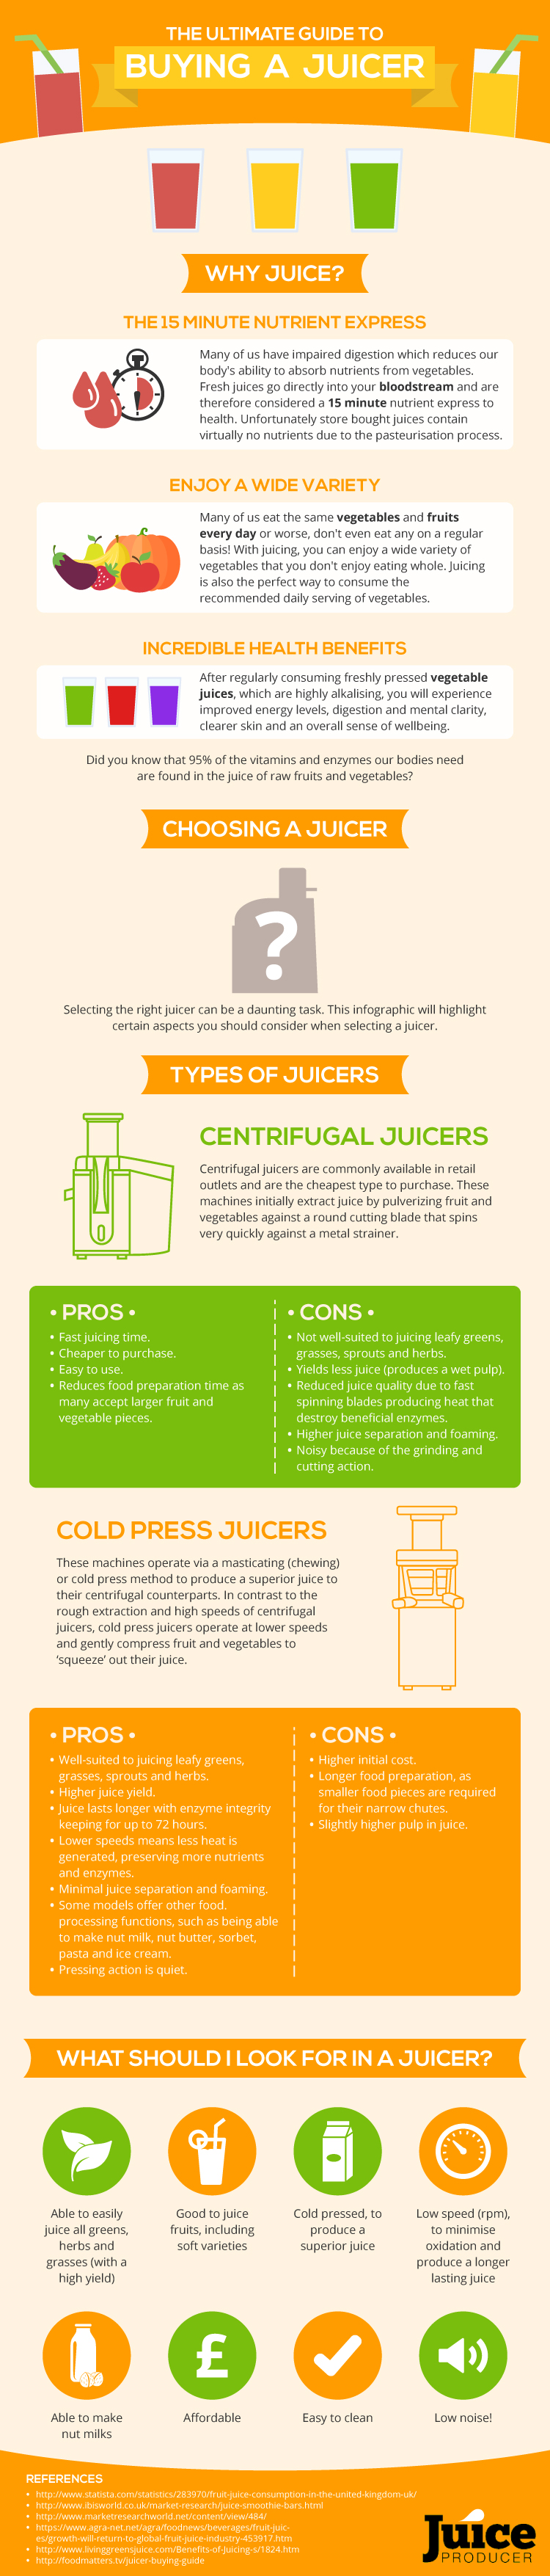 The Ultimate Guide to Buying a Juicer by Juice Producer